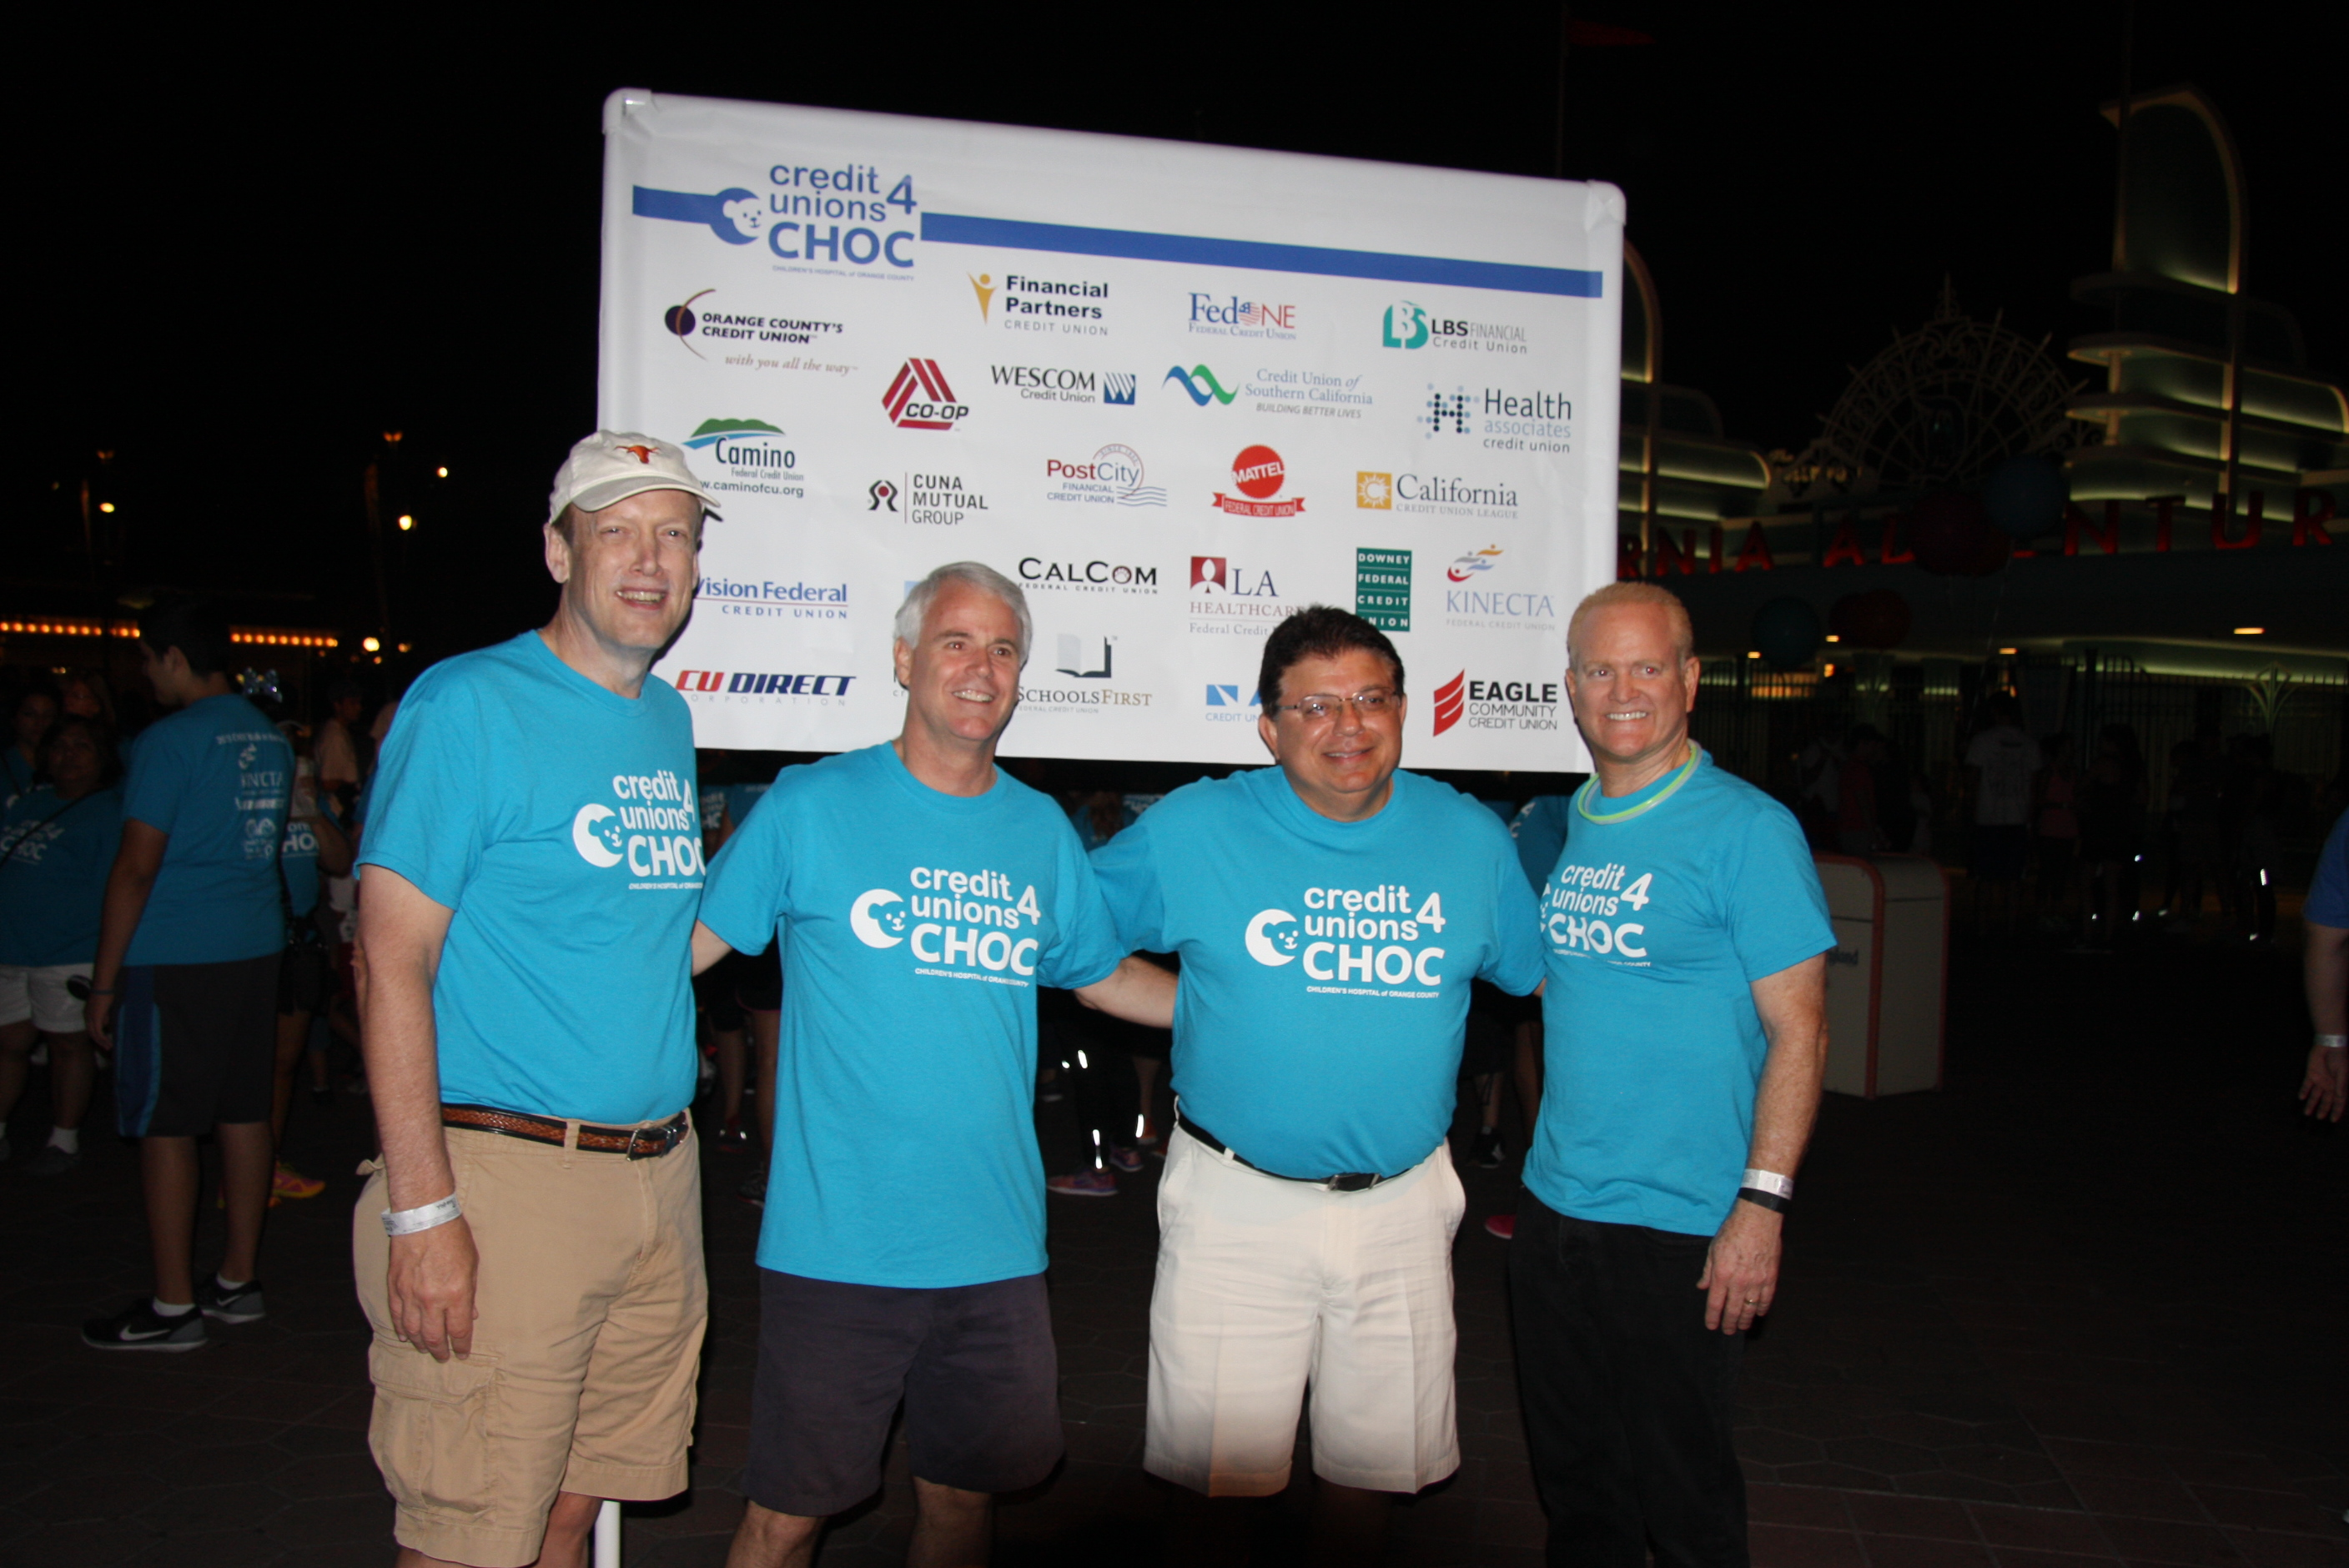 California Credit Unions And Partners Raise More Than 139 000 In The 25th Annual Choc Walk In The Park Cuinsight